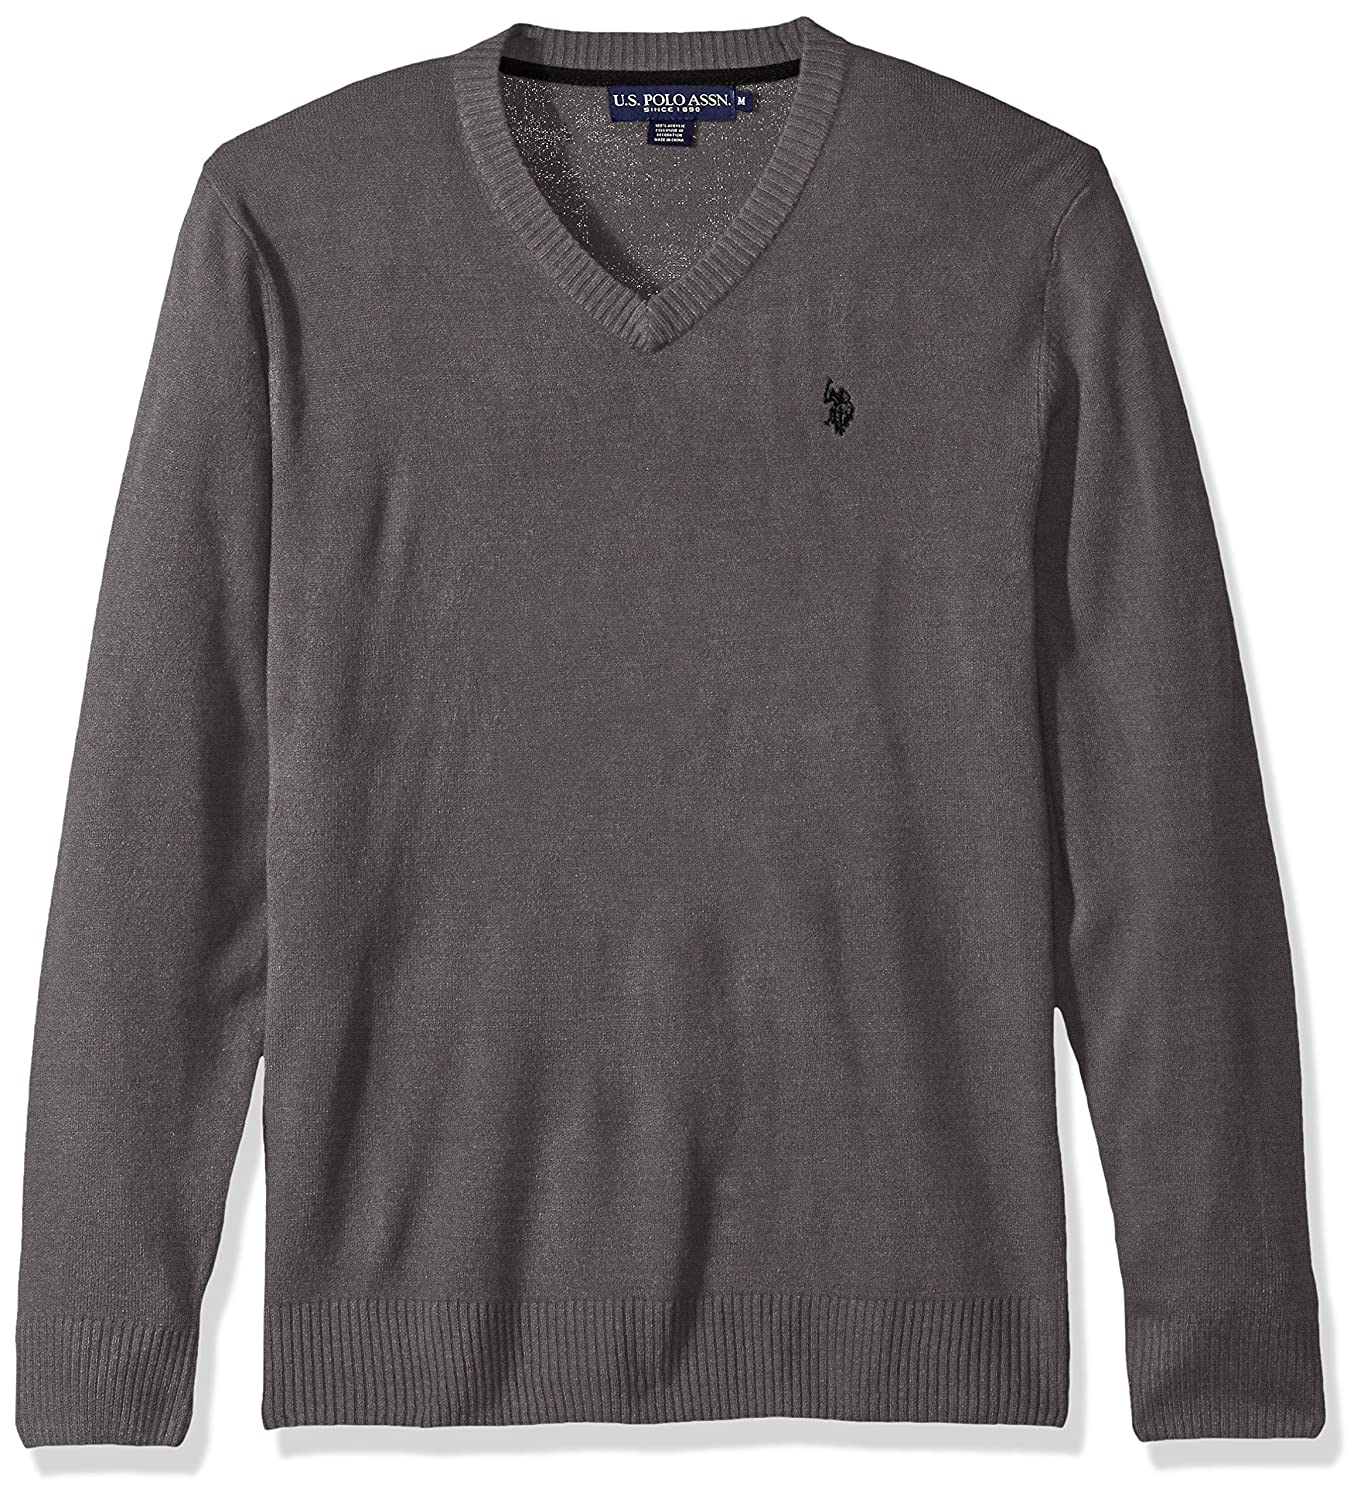 U.S. Polo Assn. Men's Solid V-Neck Sweater ACUF7S5070